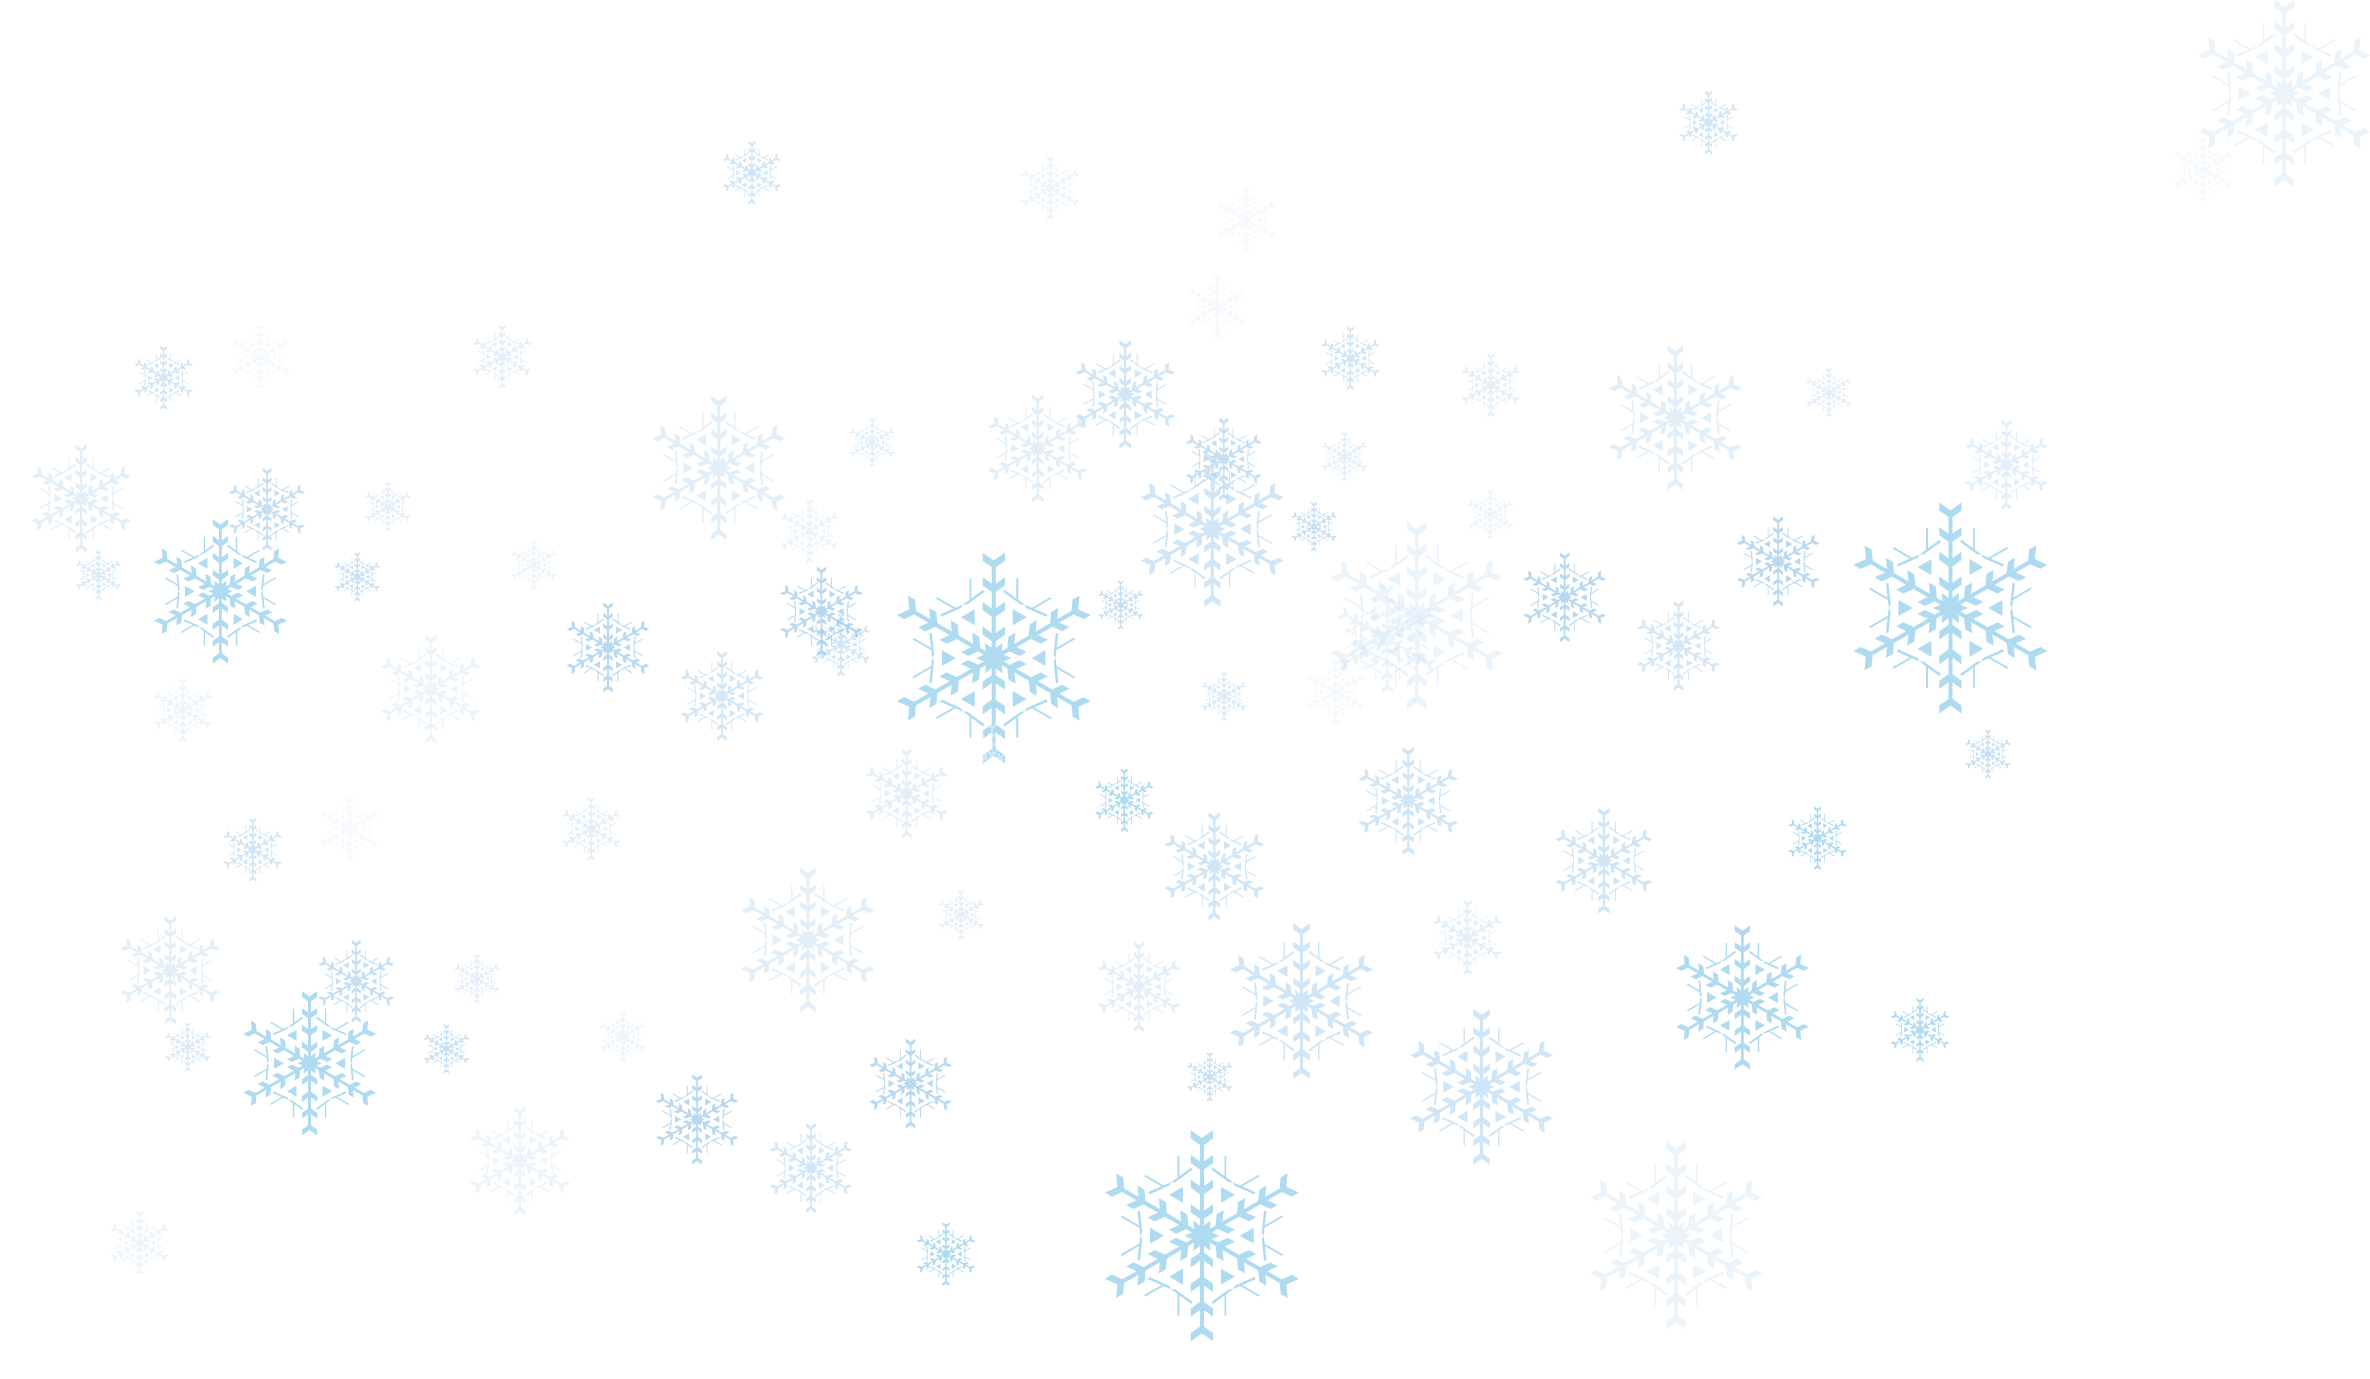 Snowflake wallpaper clipart image royalty free download 28+ Collection of Snowflake Clipart Background | High quality, free ... image royalty free download